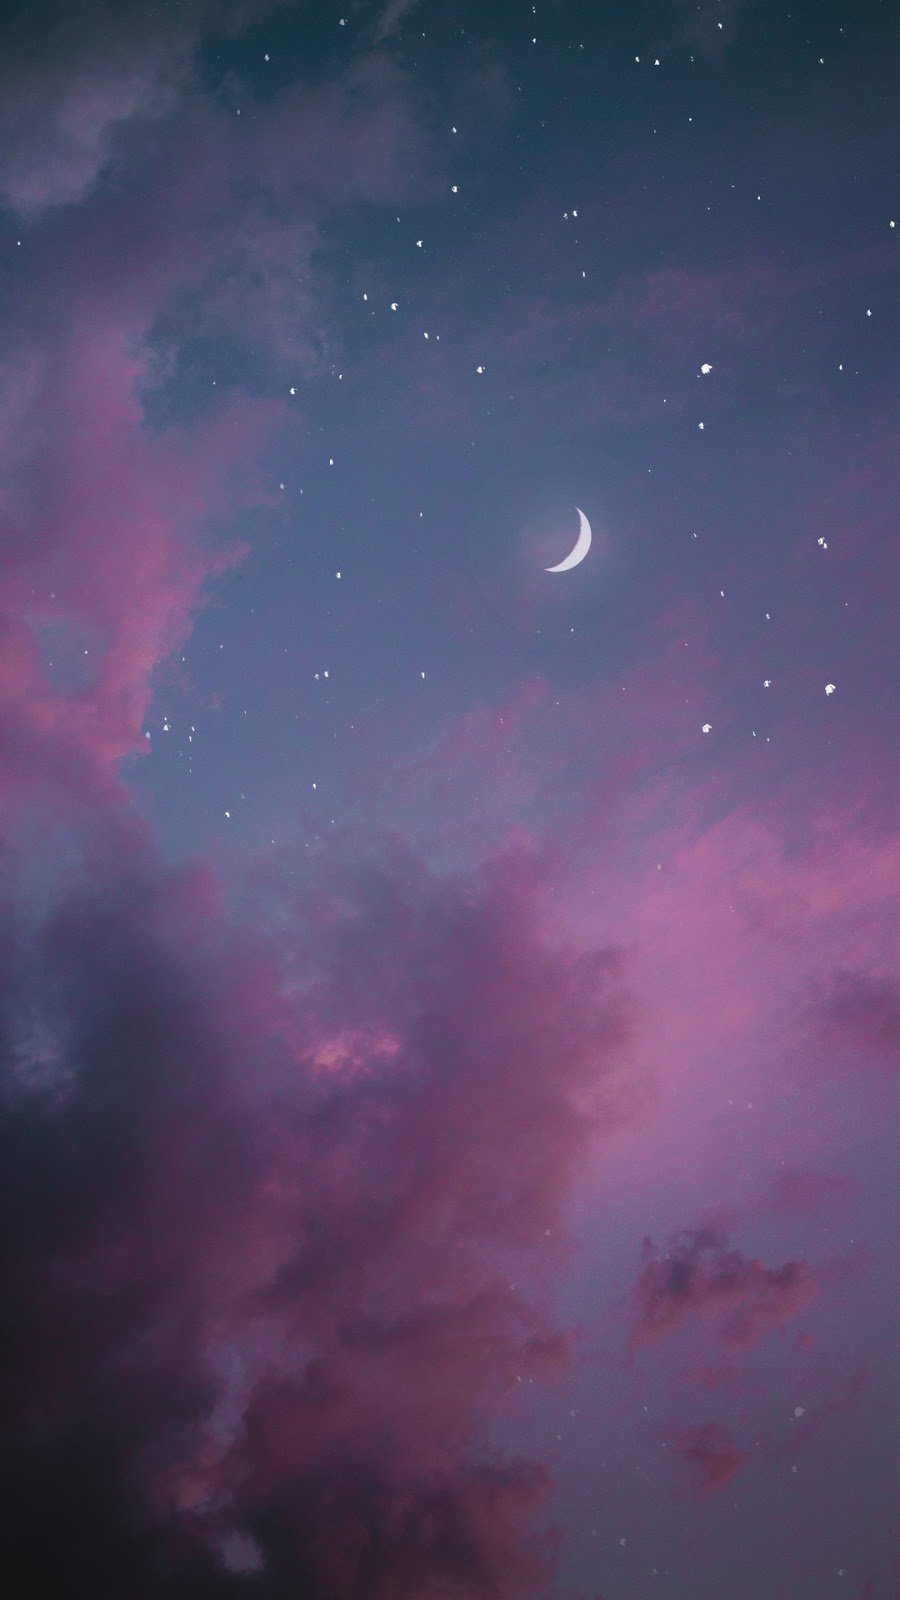 In the night wallpaper